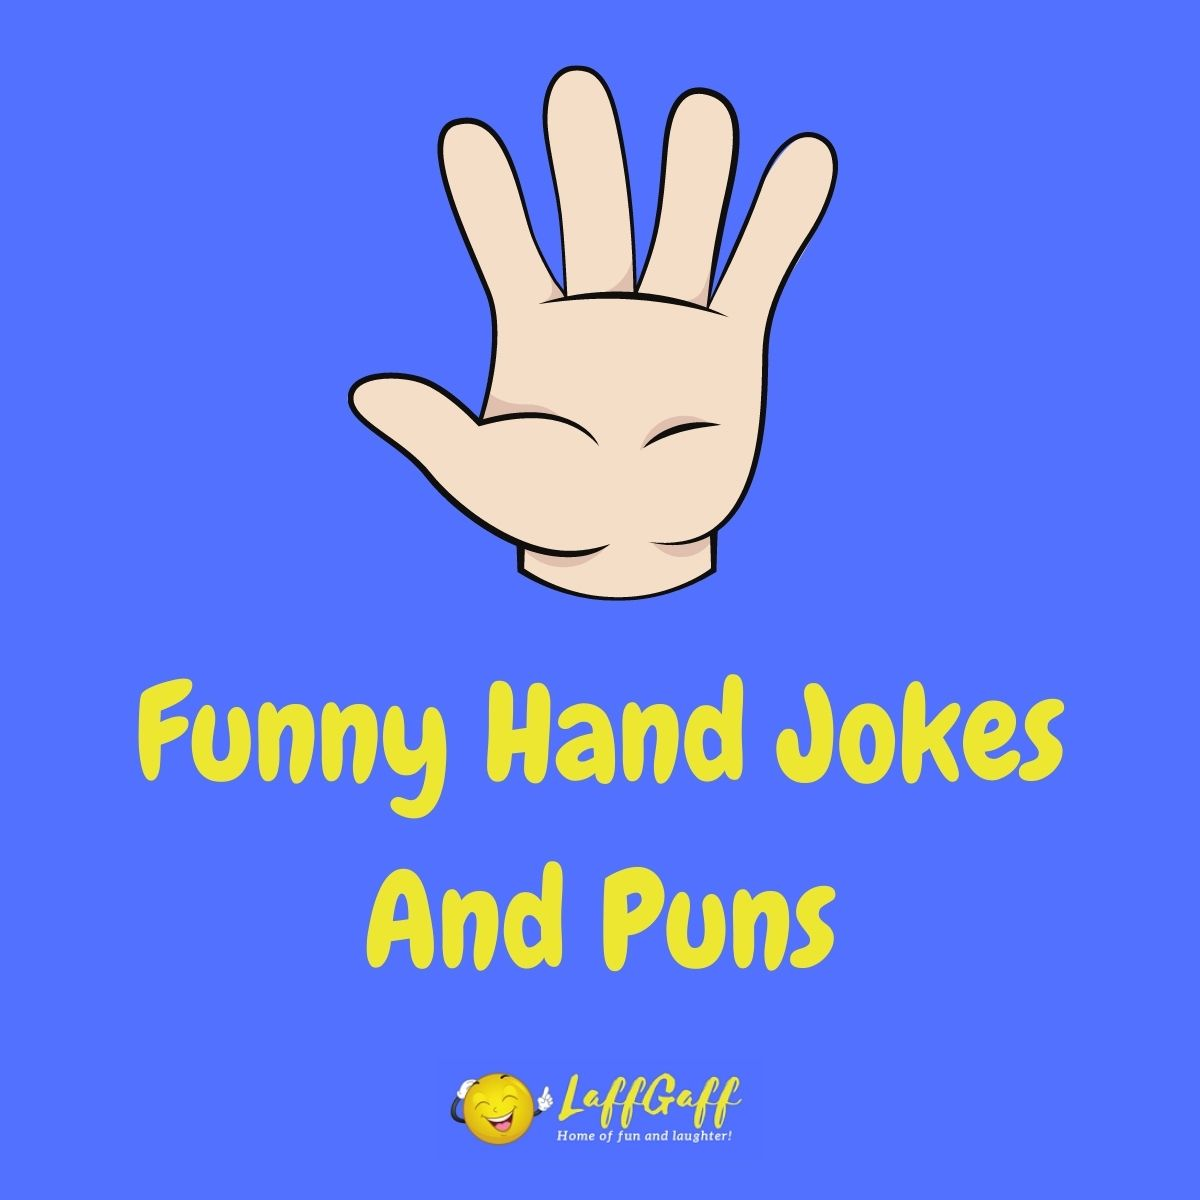 Featured image for a page of funny hand jokes and puns.